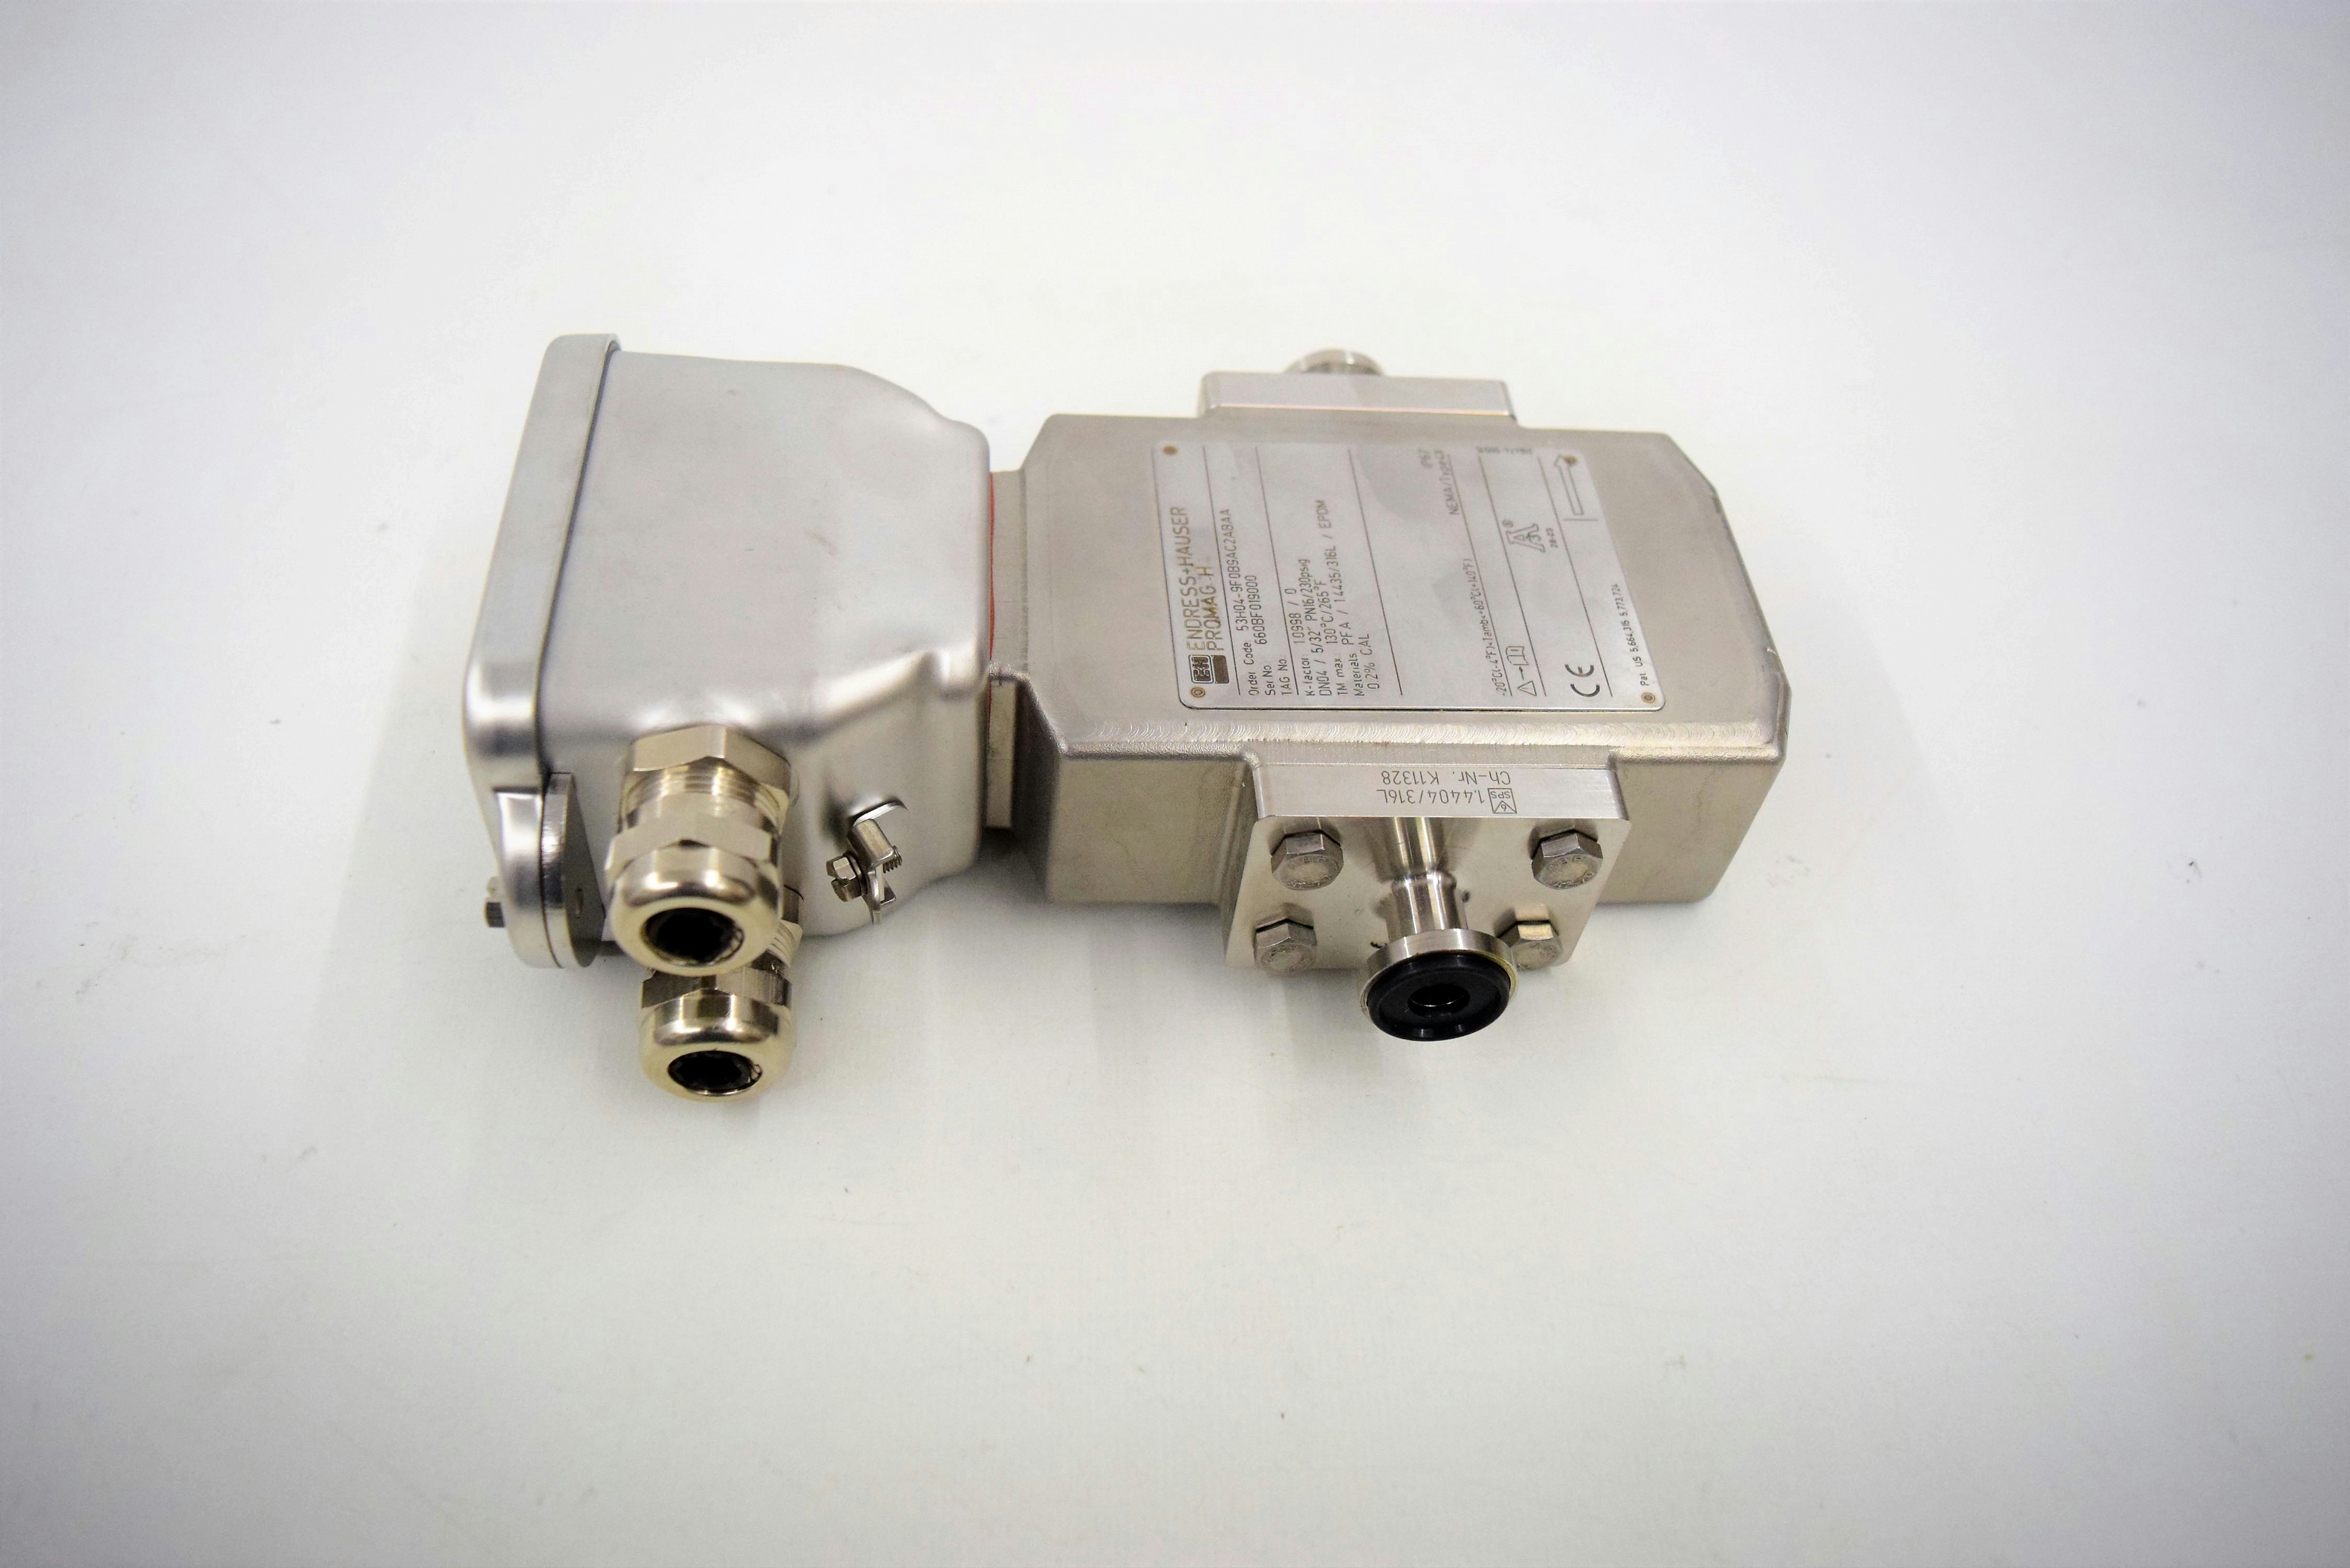 Details about Endress Hauser Promag H Flow Meter 53H04-9F0B9AC2ABAA f/  Amersham System